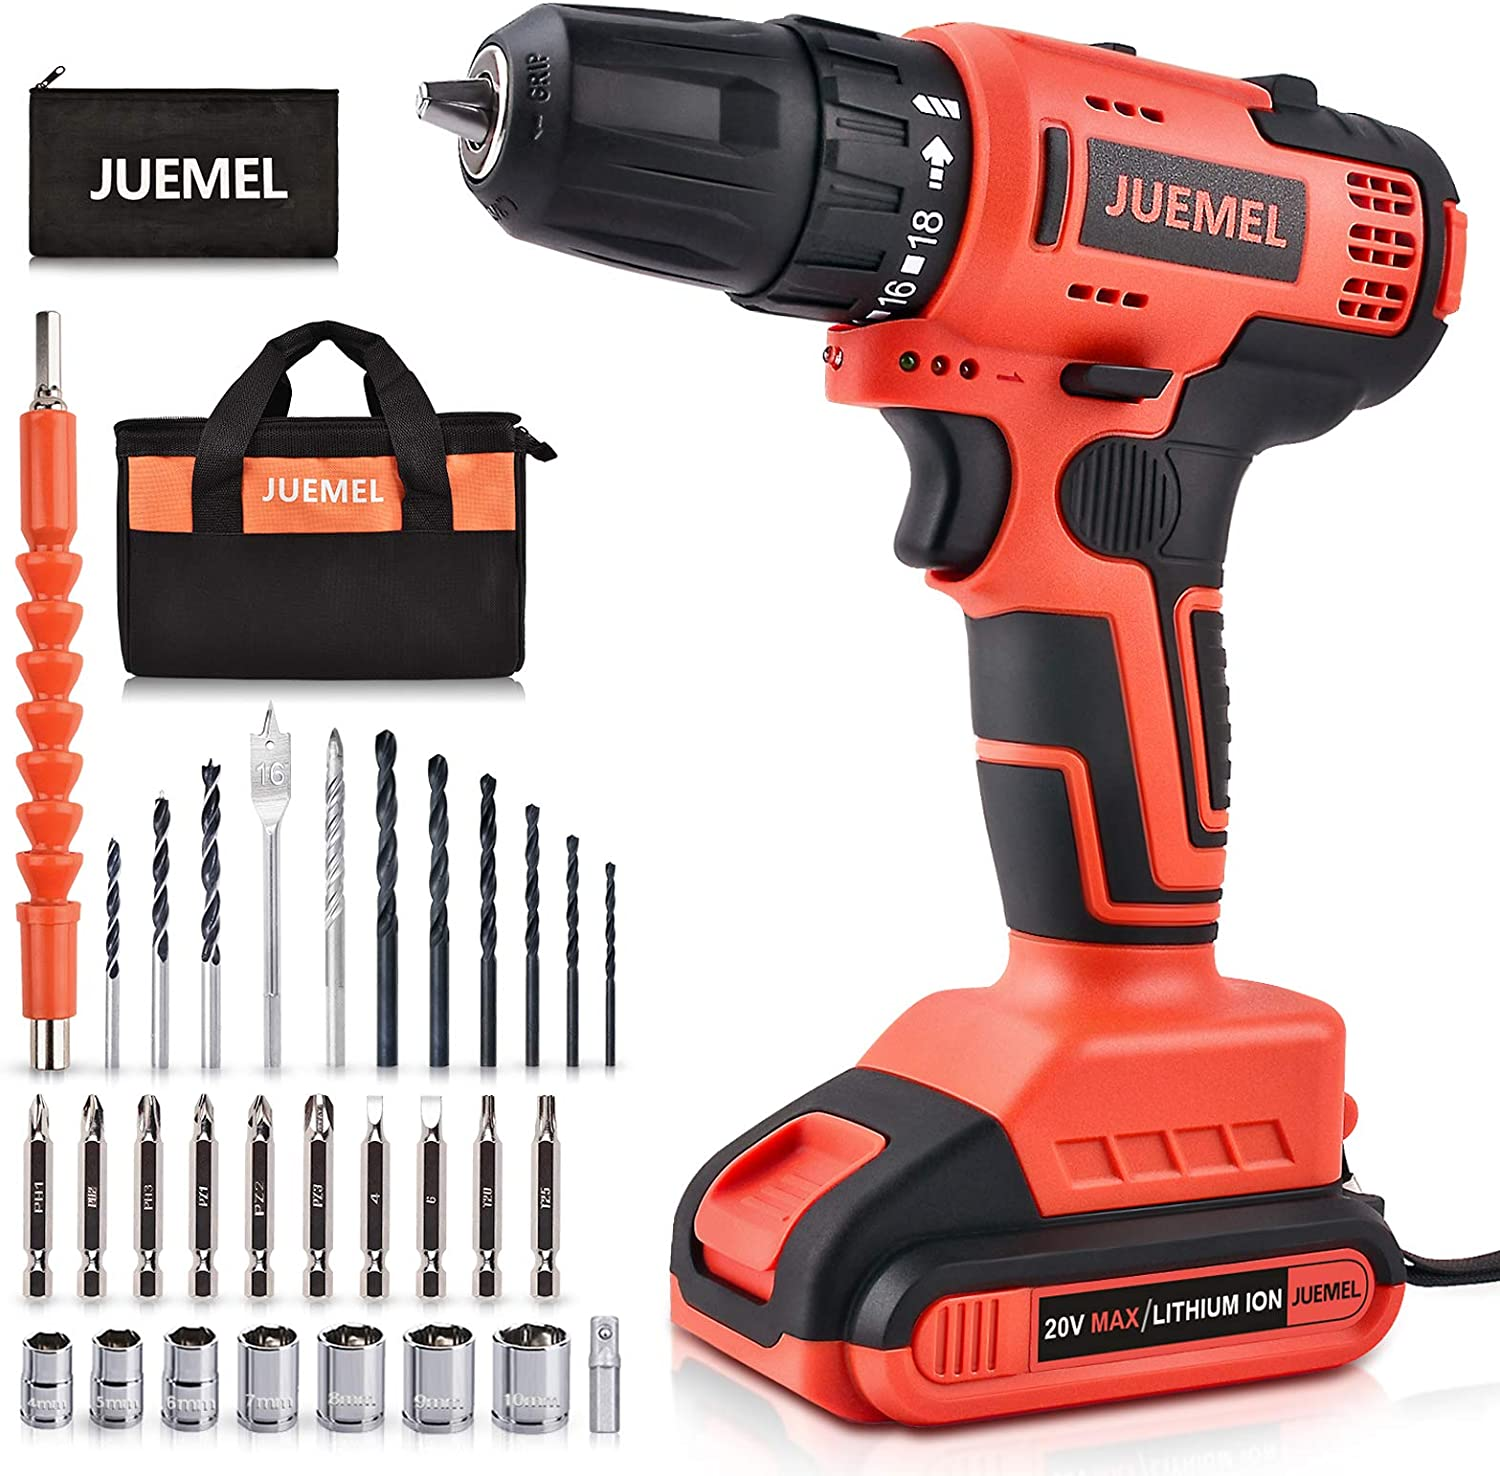 Cordless Drill 20V, JUEMEL Brushless Drill Driver Set, Lithium-ion Power Electric Drill with 3/8'' Keyless Chuck, 430in-lbs, 18+1 Clutch and 0-2200RPM Variable Speed for Home Improvement and DIY Tasks